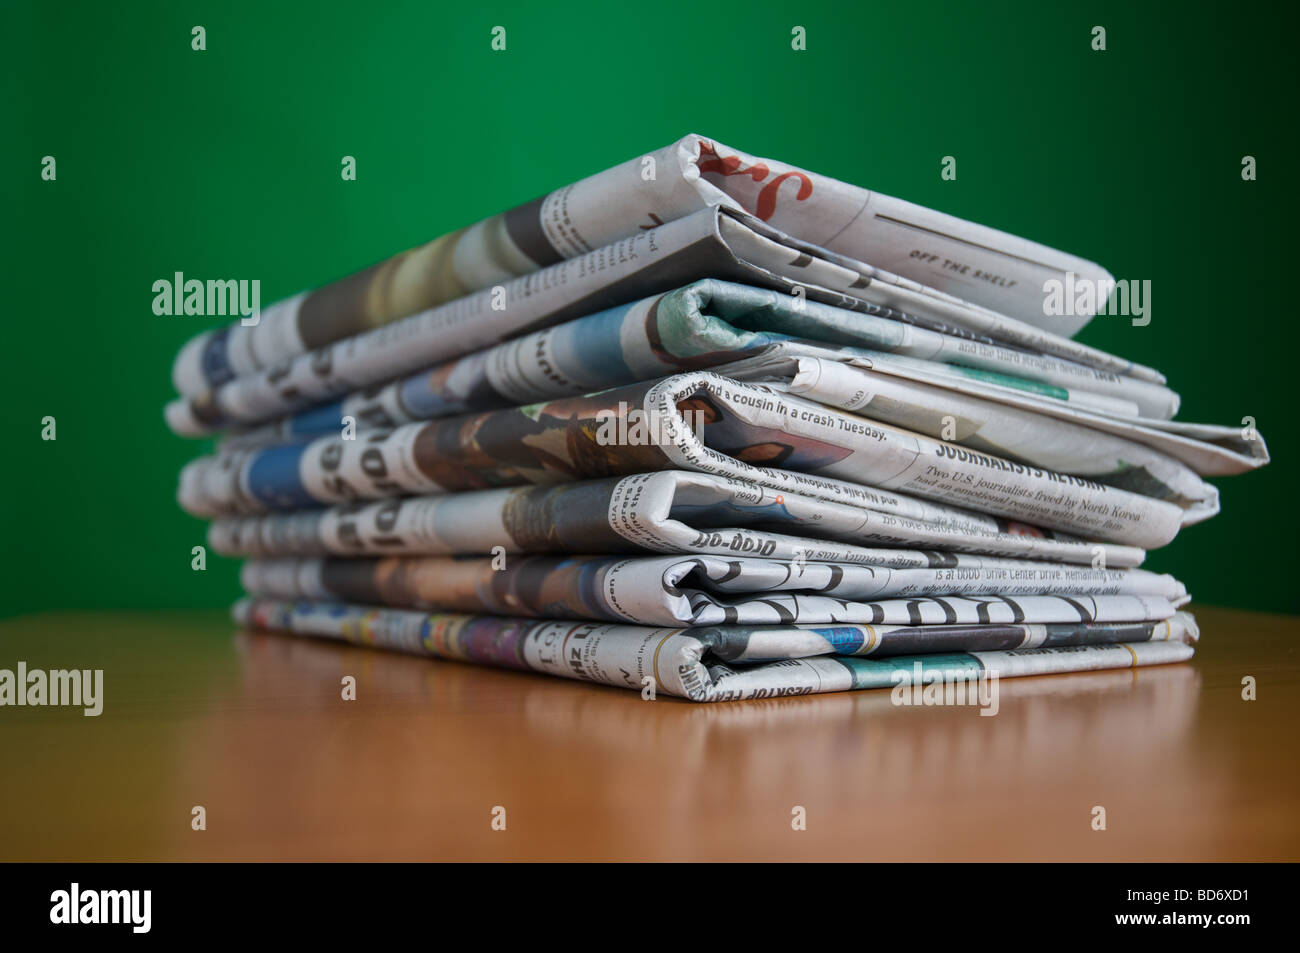 Stack of reading and research newspaper an old fashioned way of consuming news of the day - Stock Image